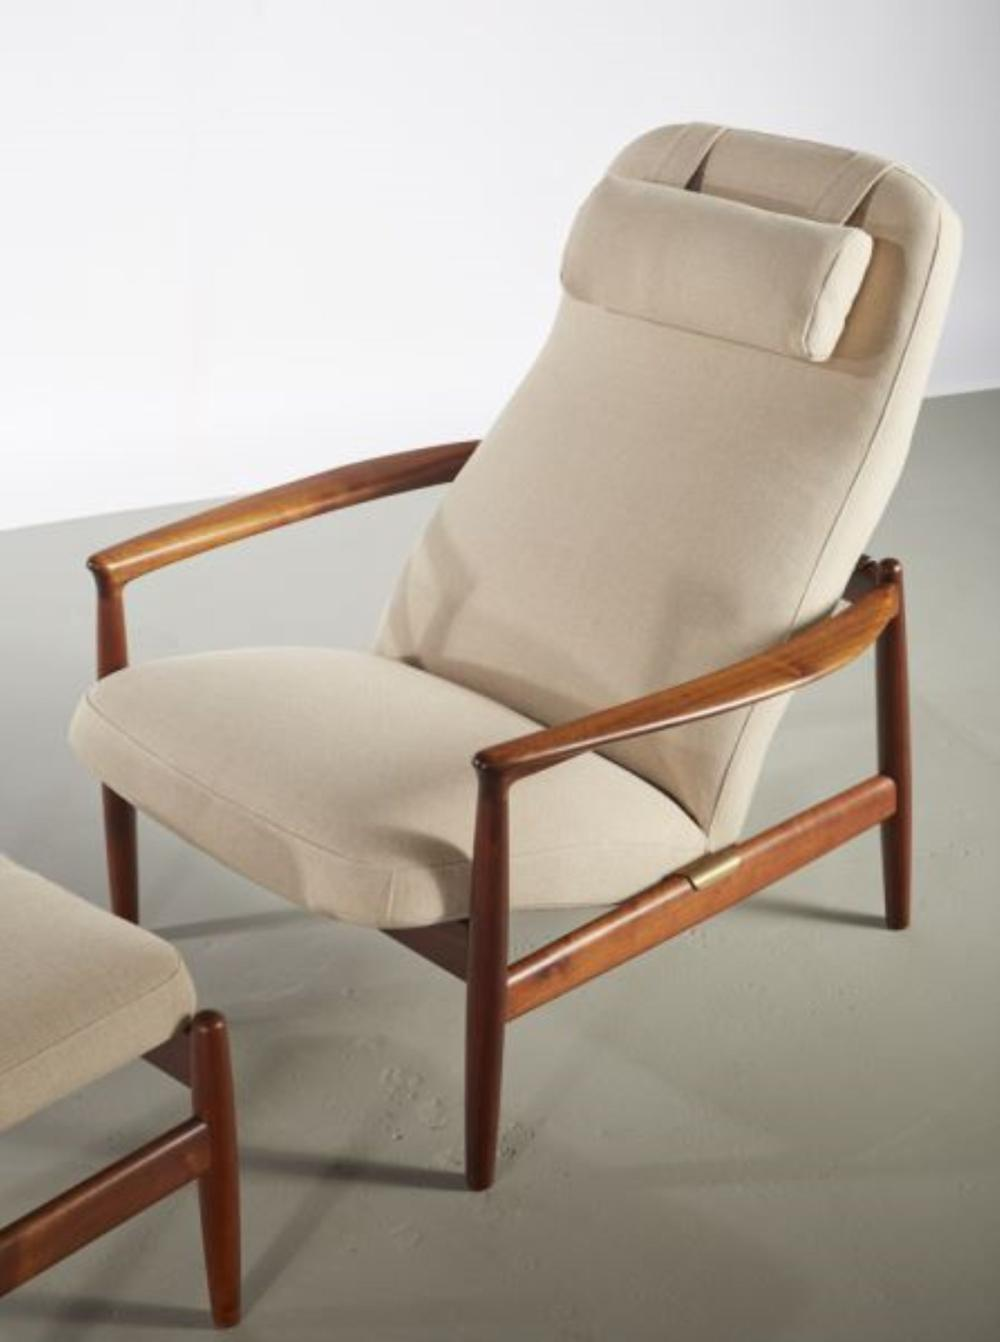 Astounding Folke Ohlsson Danish Teak Lounge Chair And Ottoman Pabps2019 Chair Design Images Pabps2019Com